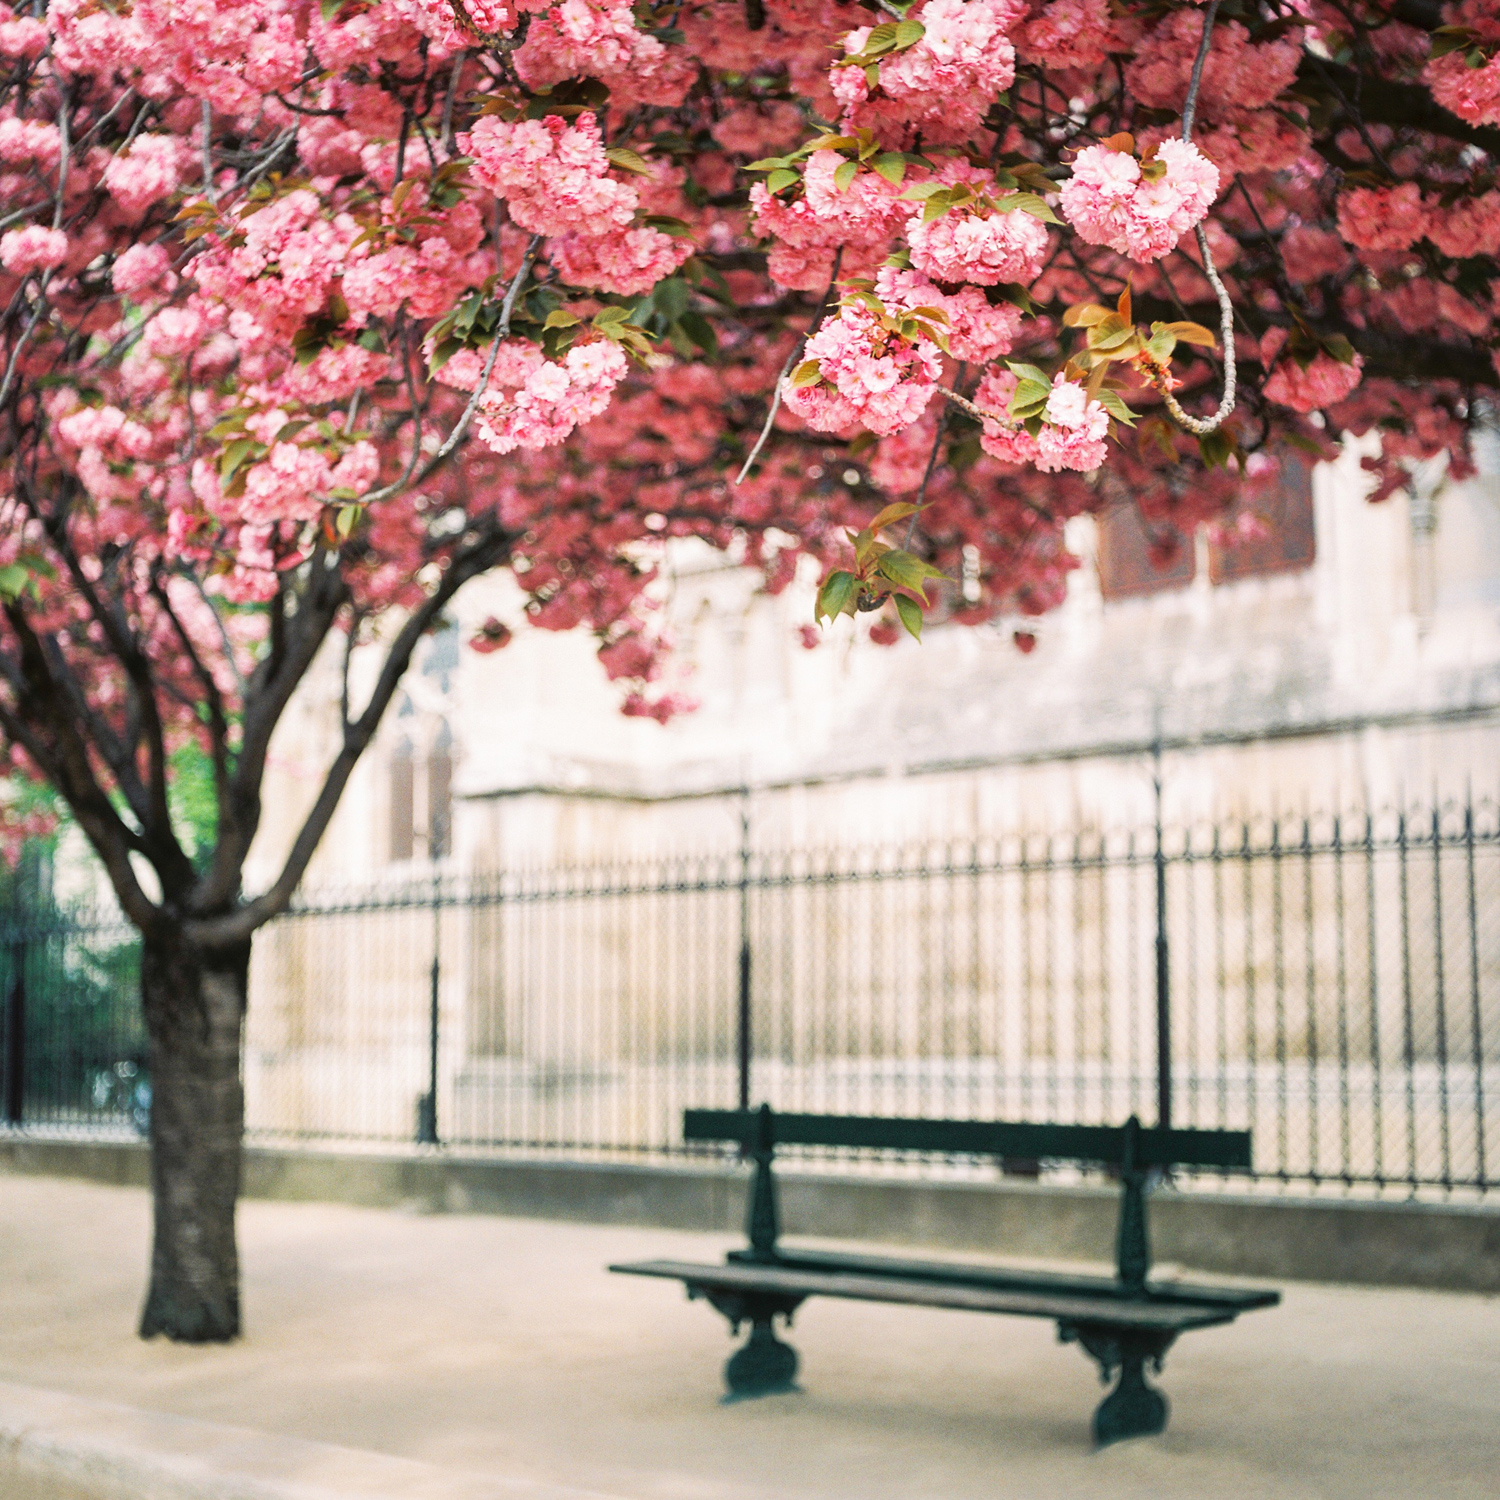 007-katie-mitchell-paris-photographer-springtime-cherry-blossom-magnolia-season-in-paris.jpg